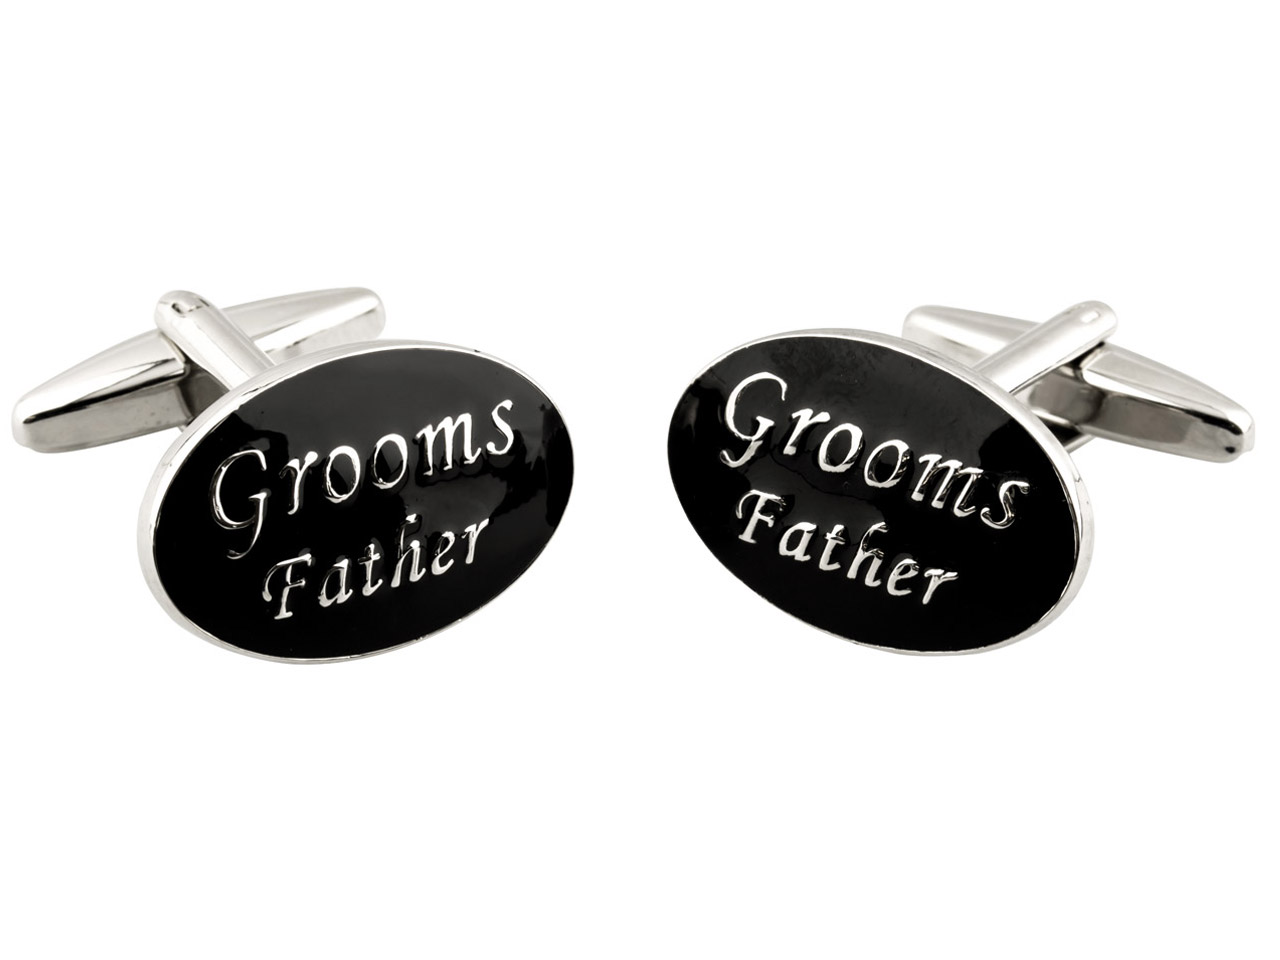 Oval Grooms Father Wedding         Cuff Link Black Enamel,            Rhodium Plated Brass